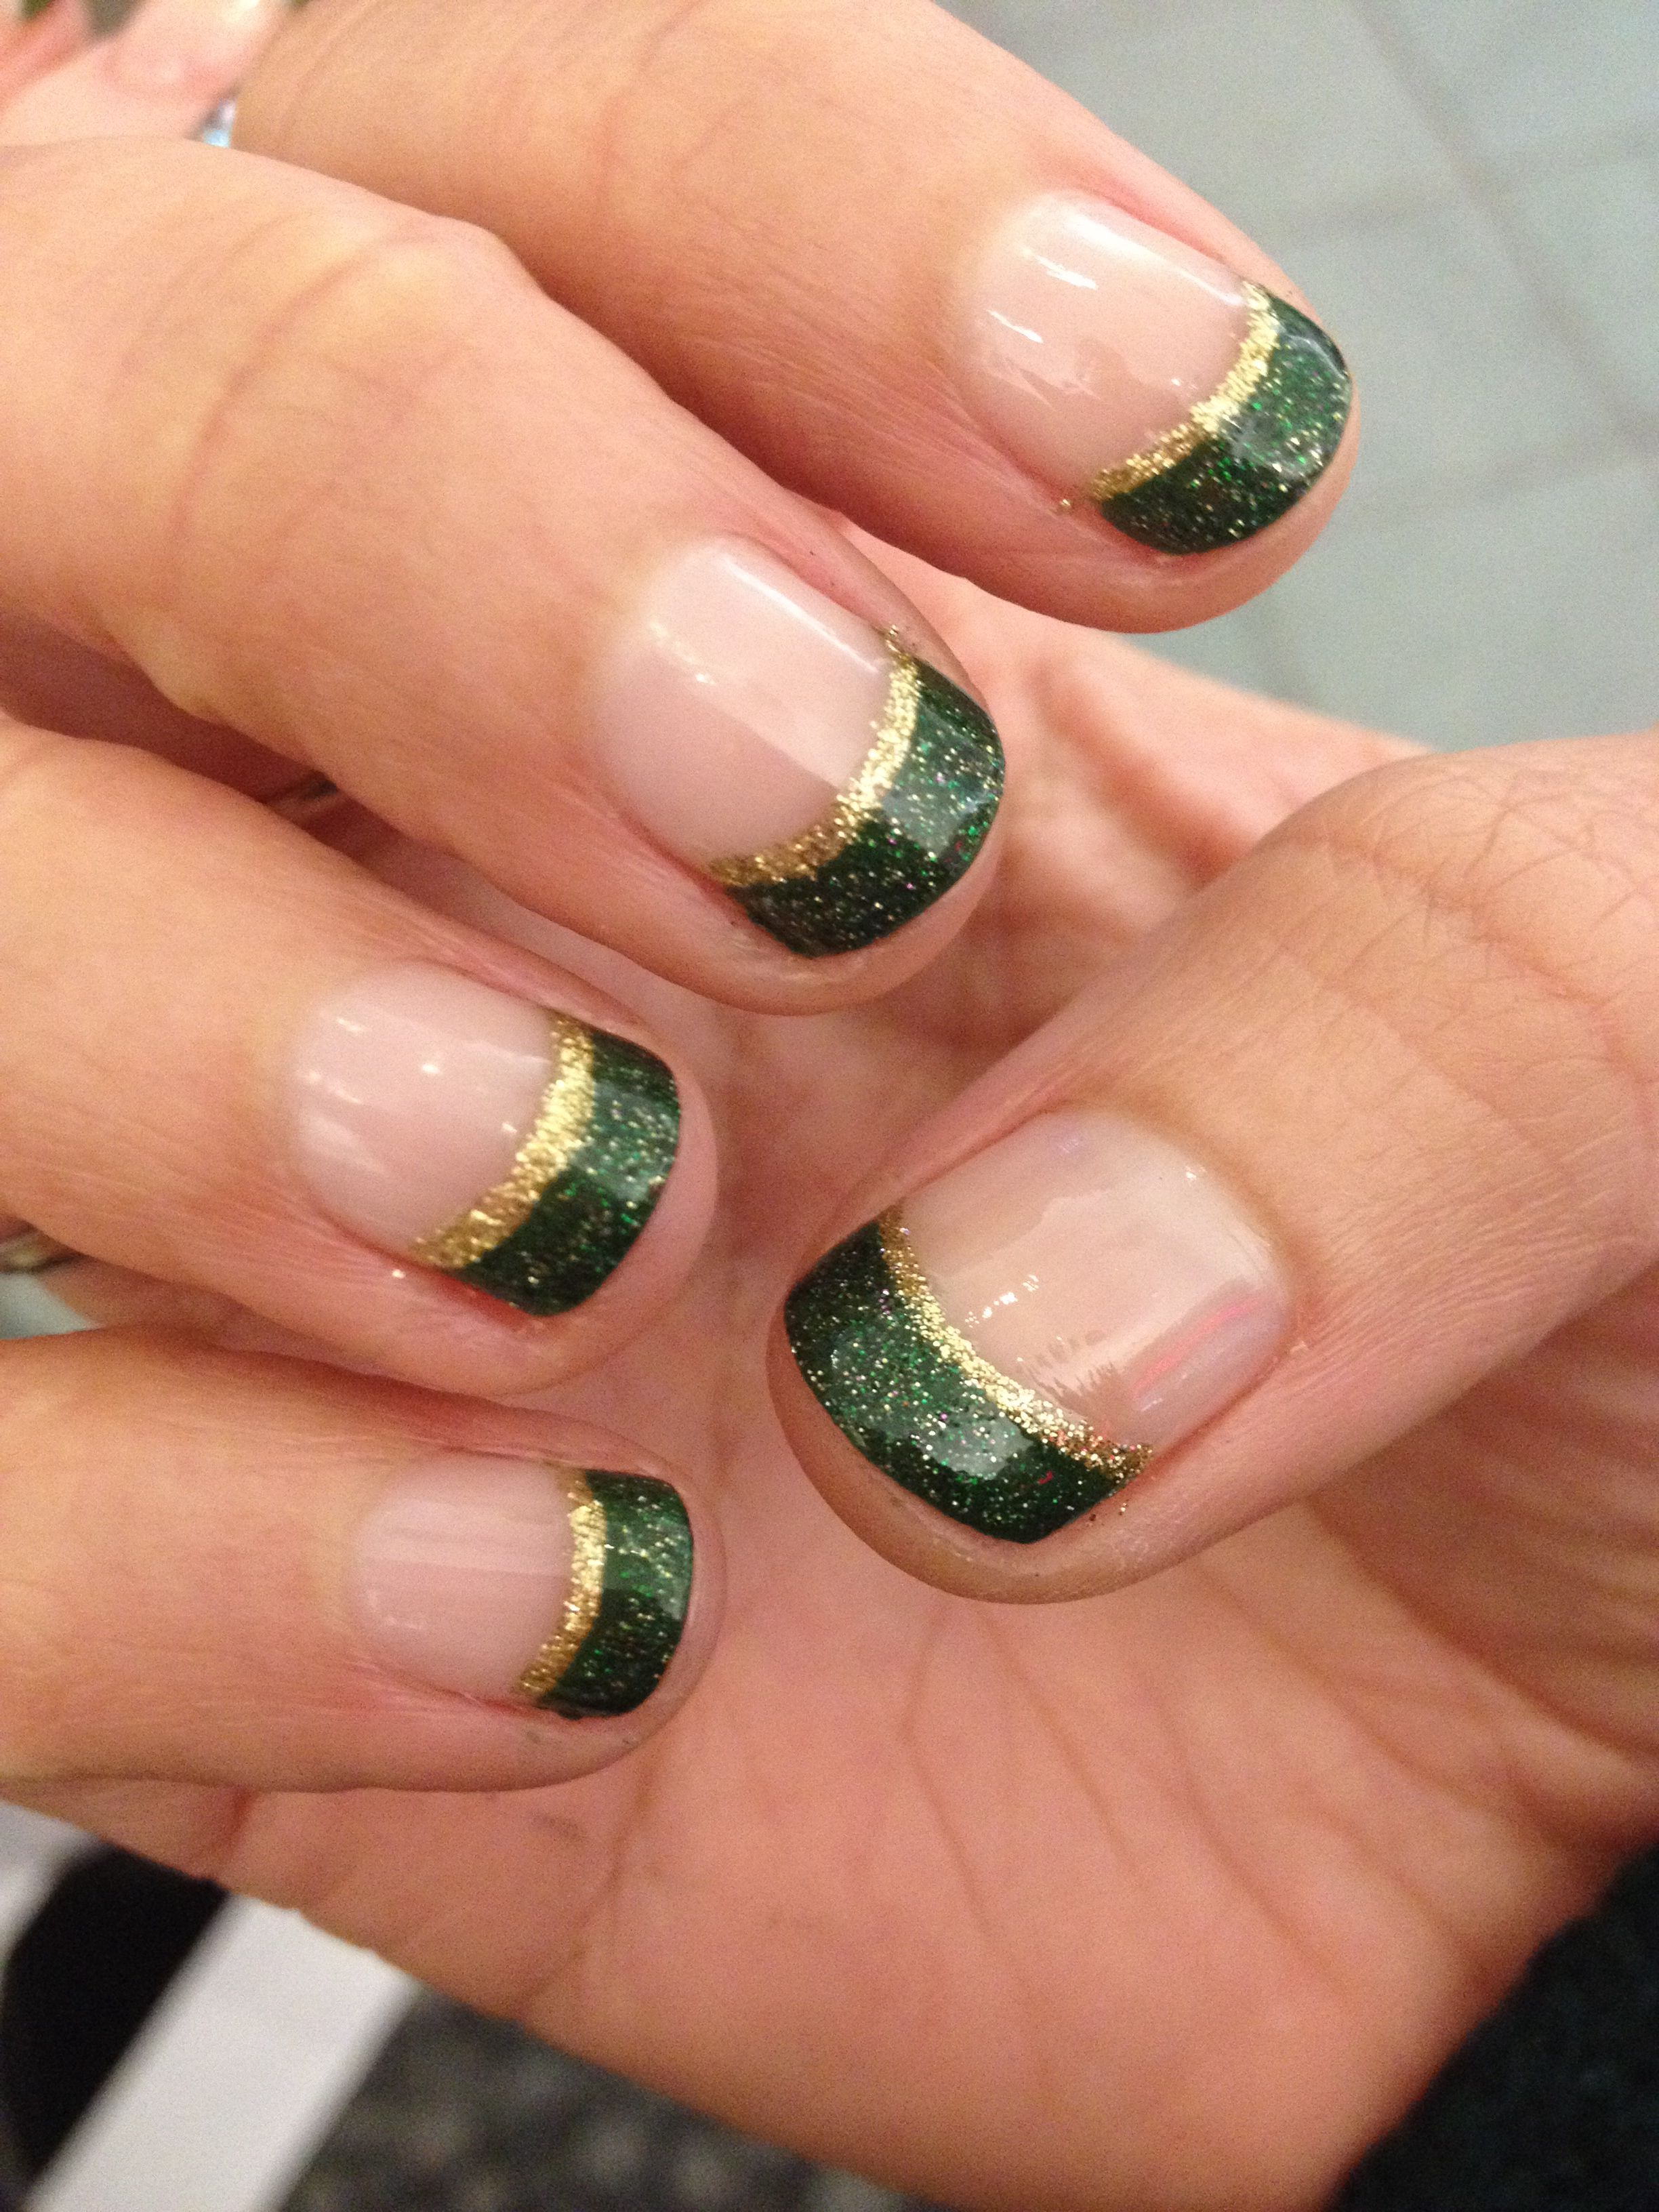 Holiday Xmas Christmas Nail Design Green Gold Glitter Gold Glitter Nails Christmas Nail